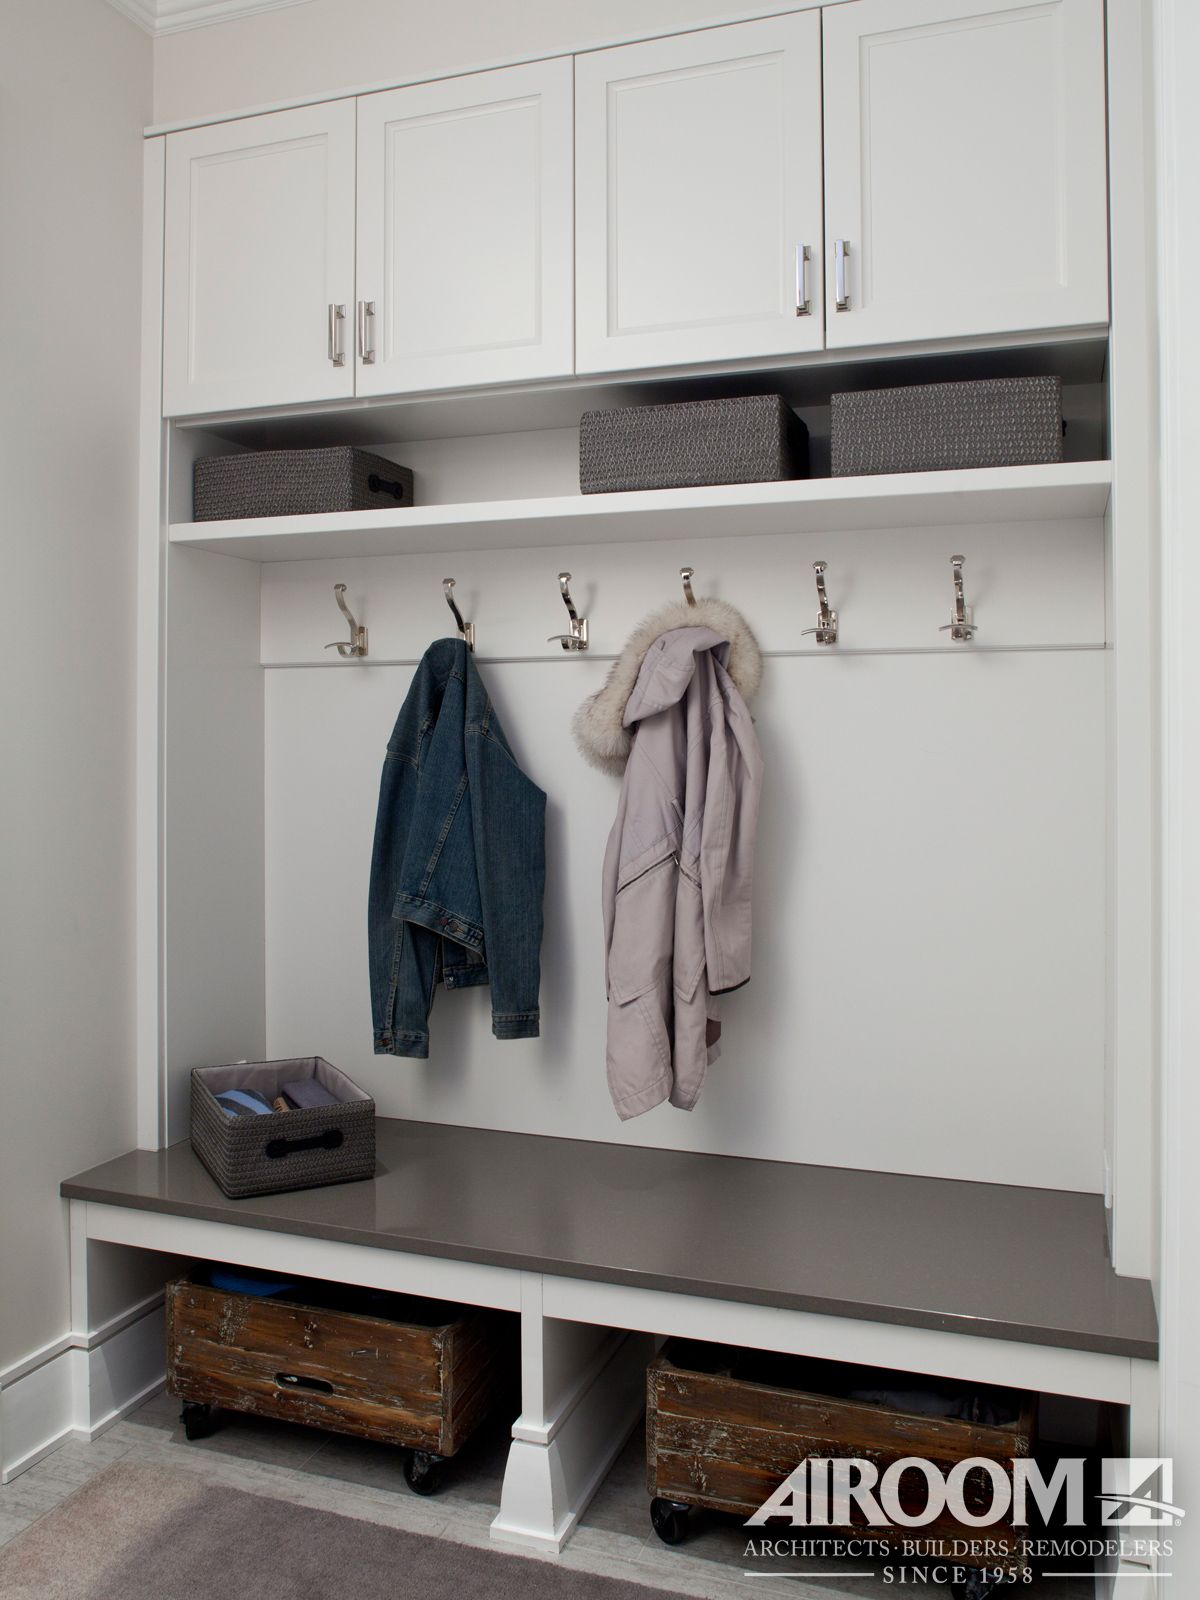 Pin By Airoom Architects Builders On Winnetka Home Remodel White Storage Cabinets Mudroom Laundry Room Mud Room Entry